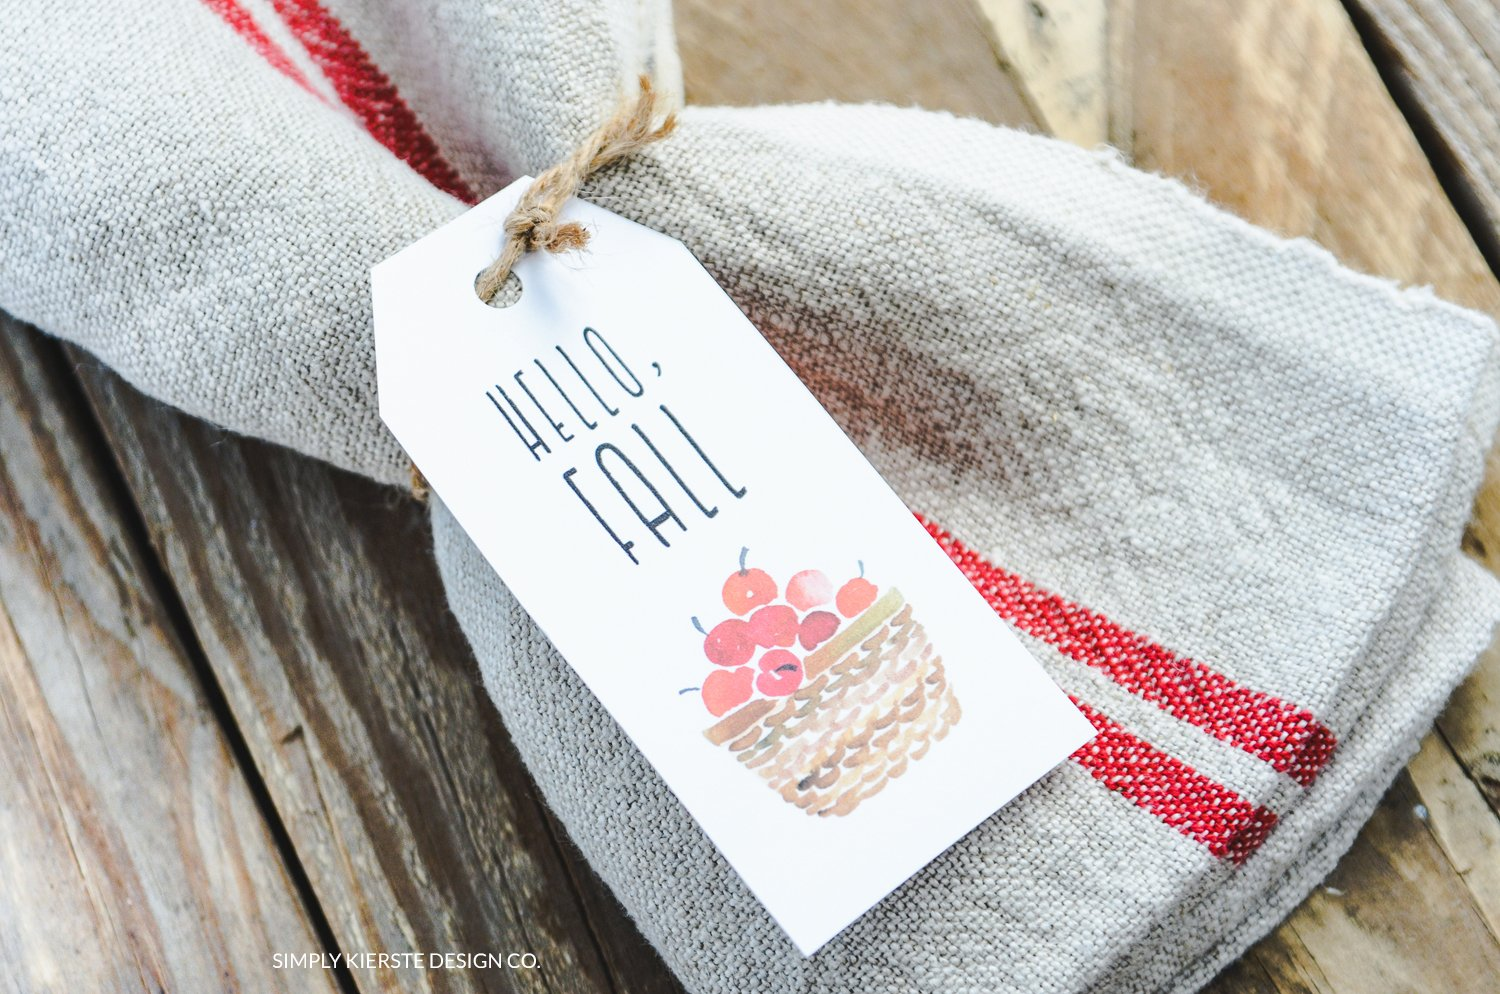 Vintage Fall Gift Tags | Hostess Gifts | simplykierste.com